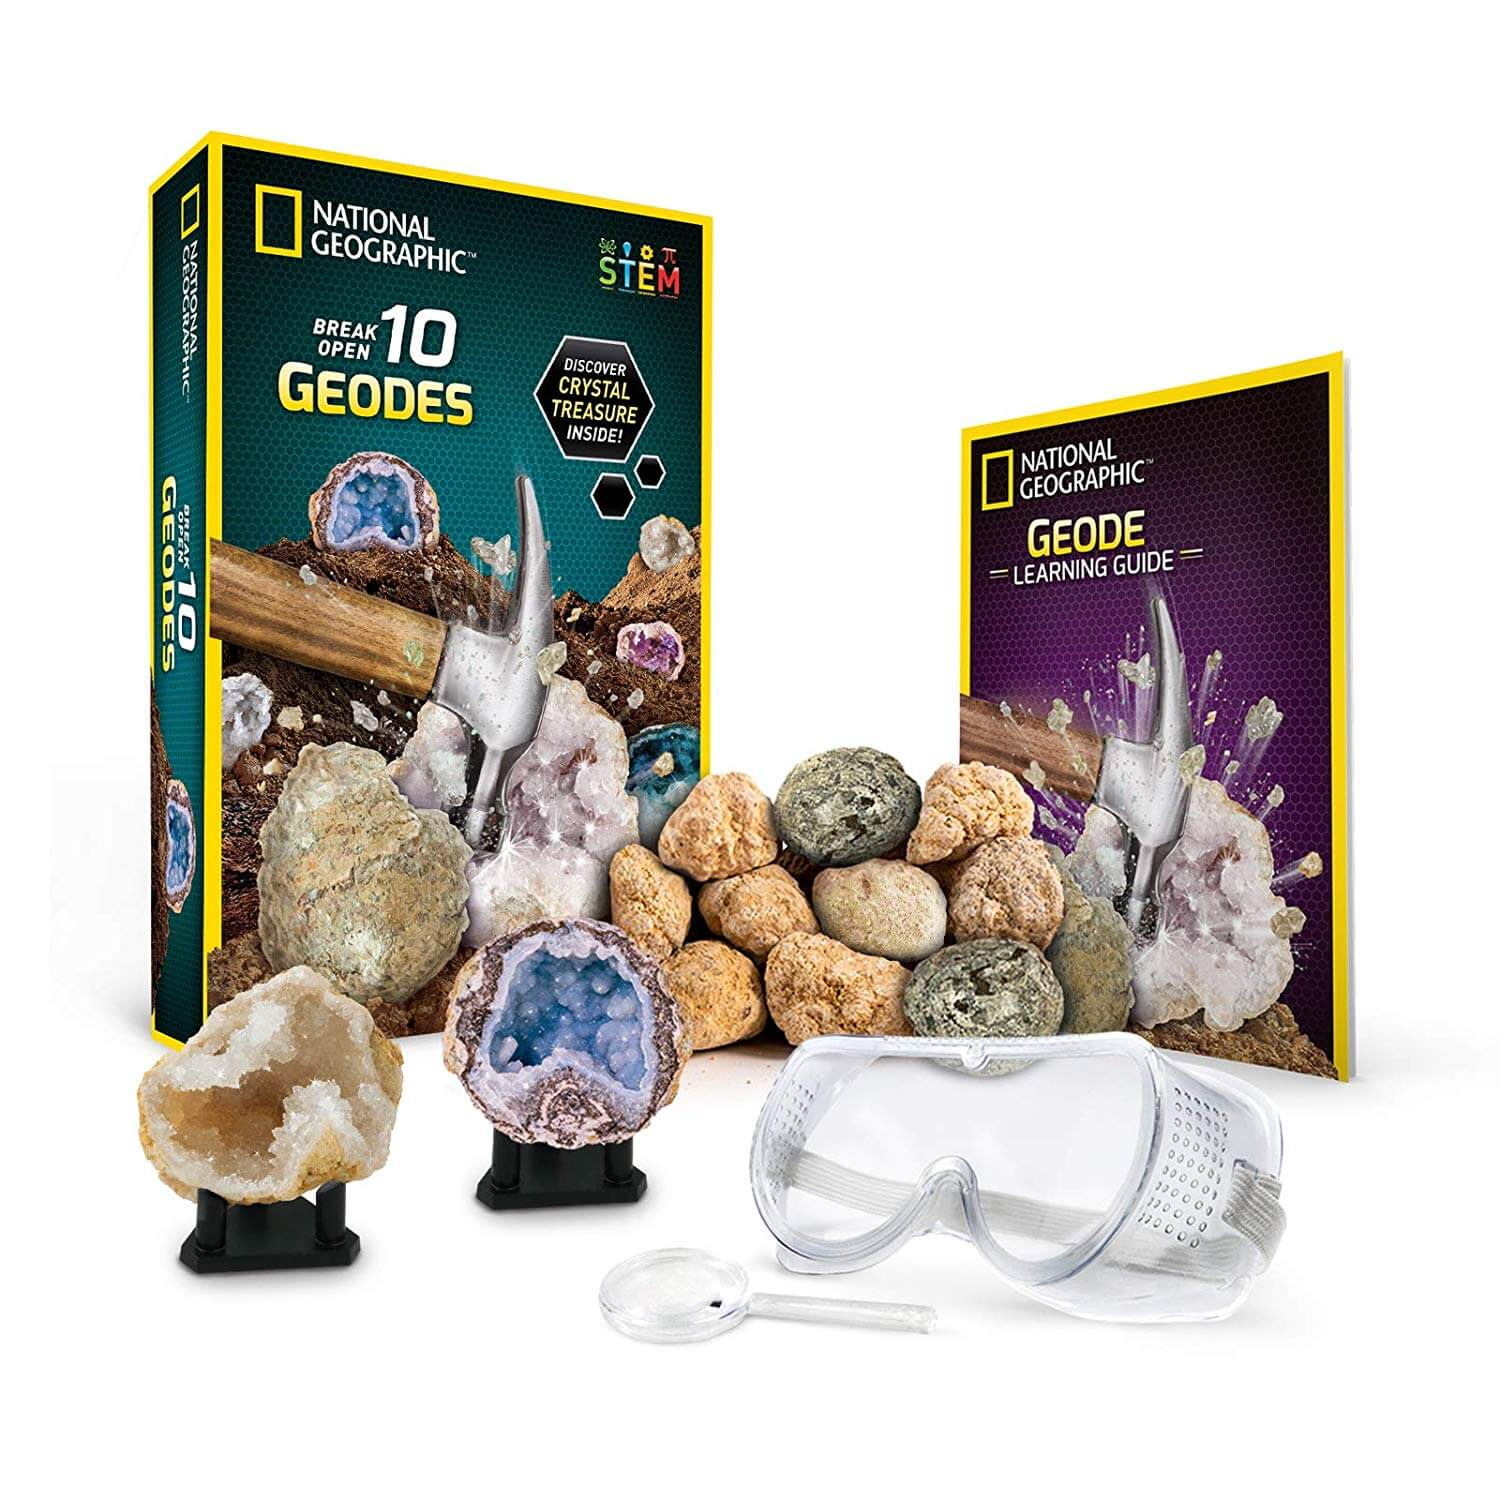 National Geographic Break Open 10 Premium Geodes - STEM Gift